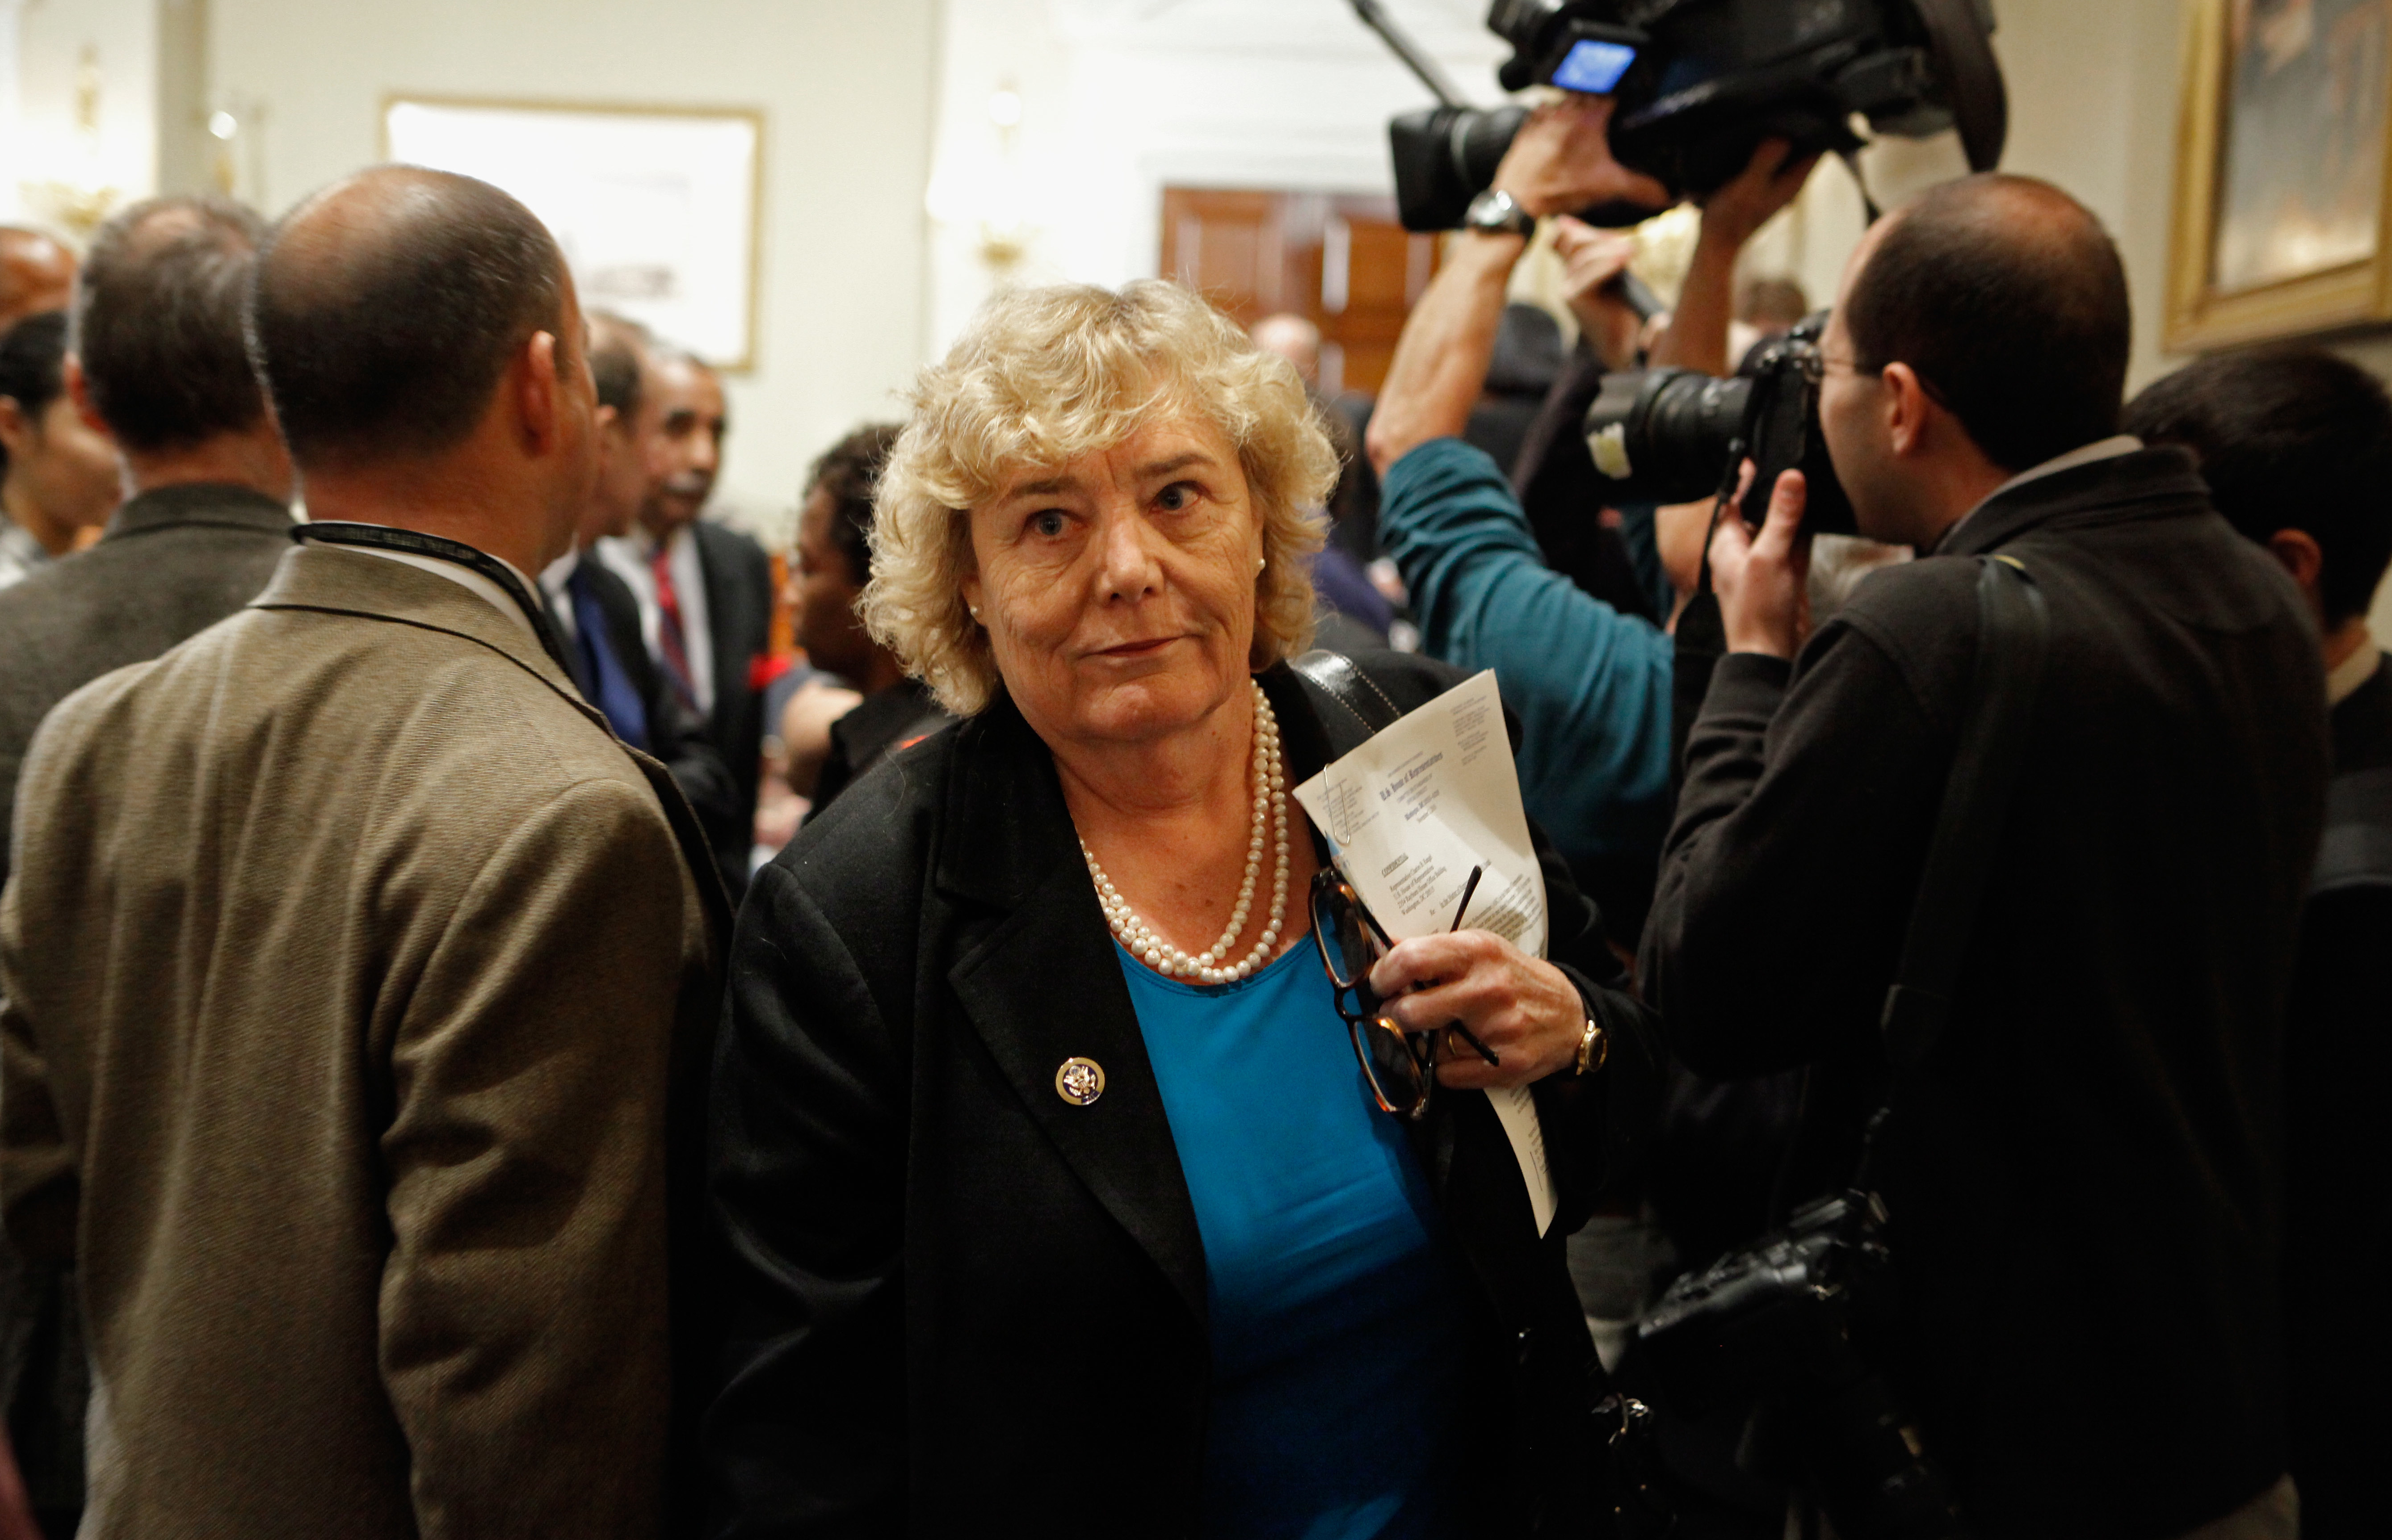 Rep. Zoe Lofgren, a Democrat who represents the heart of Silicon Valley, is trying to fix the Computer Fraud and Abuse Act. Her proposal faces serious hurdles.